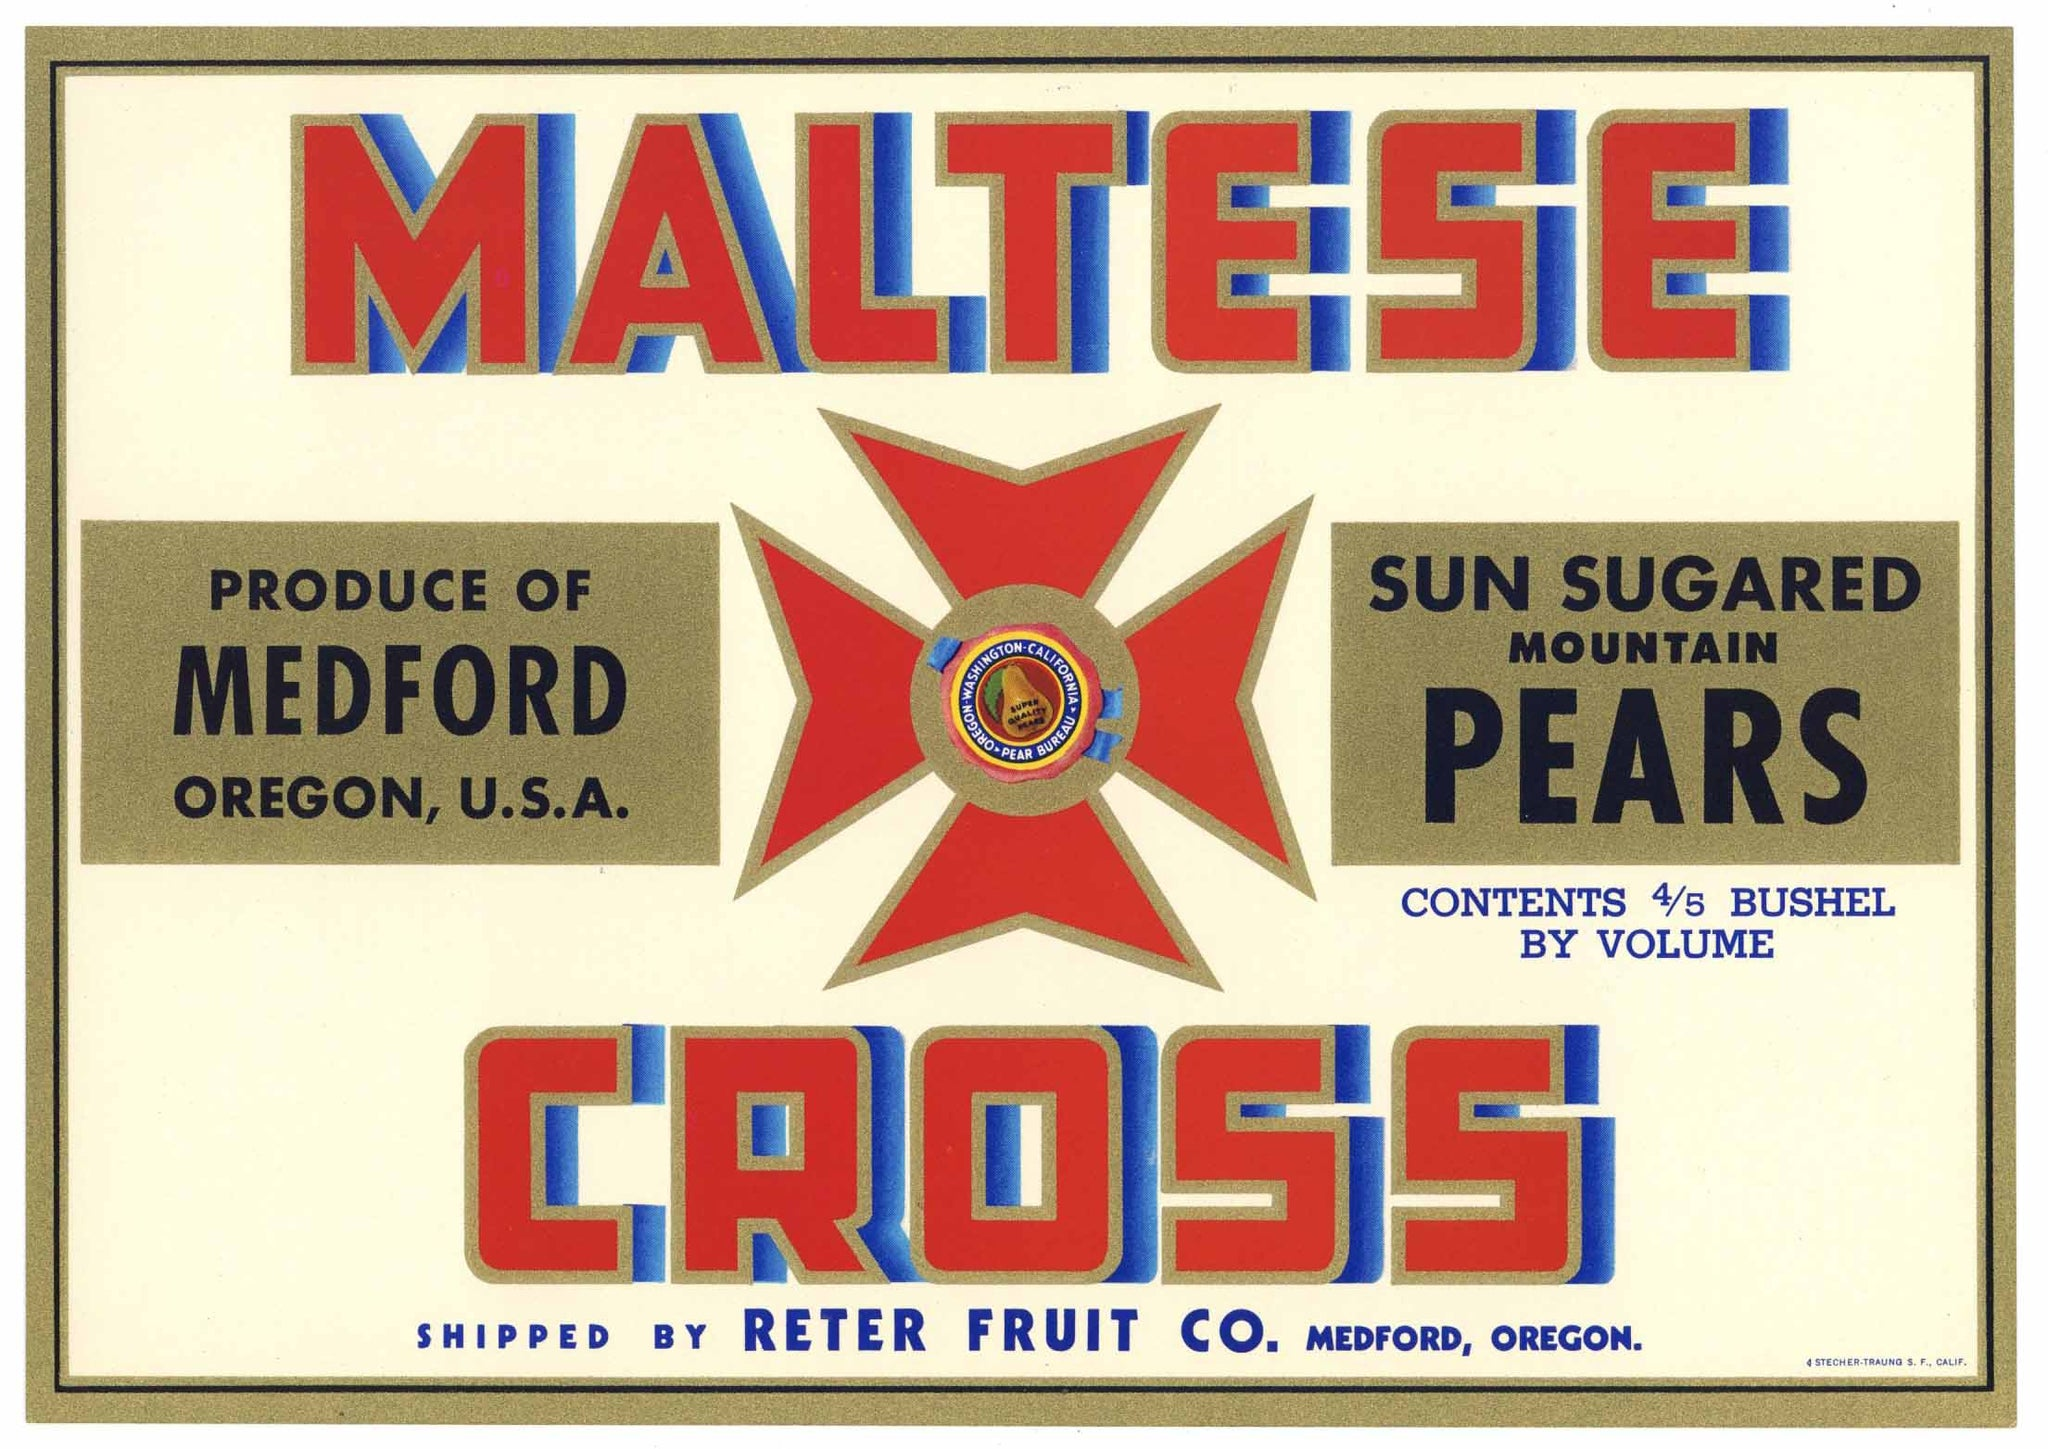 Maltese Cross Brand Vintage Medford Oregon Pear Crate Label, red